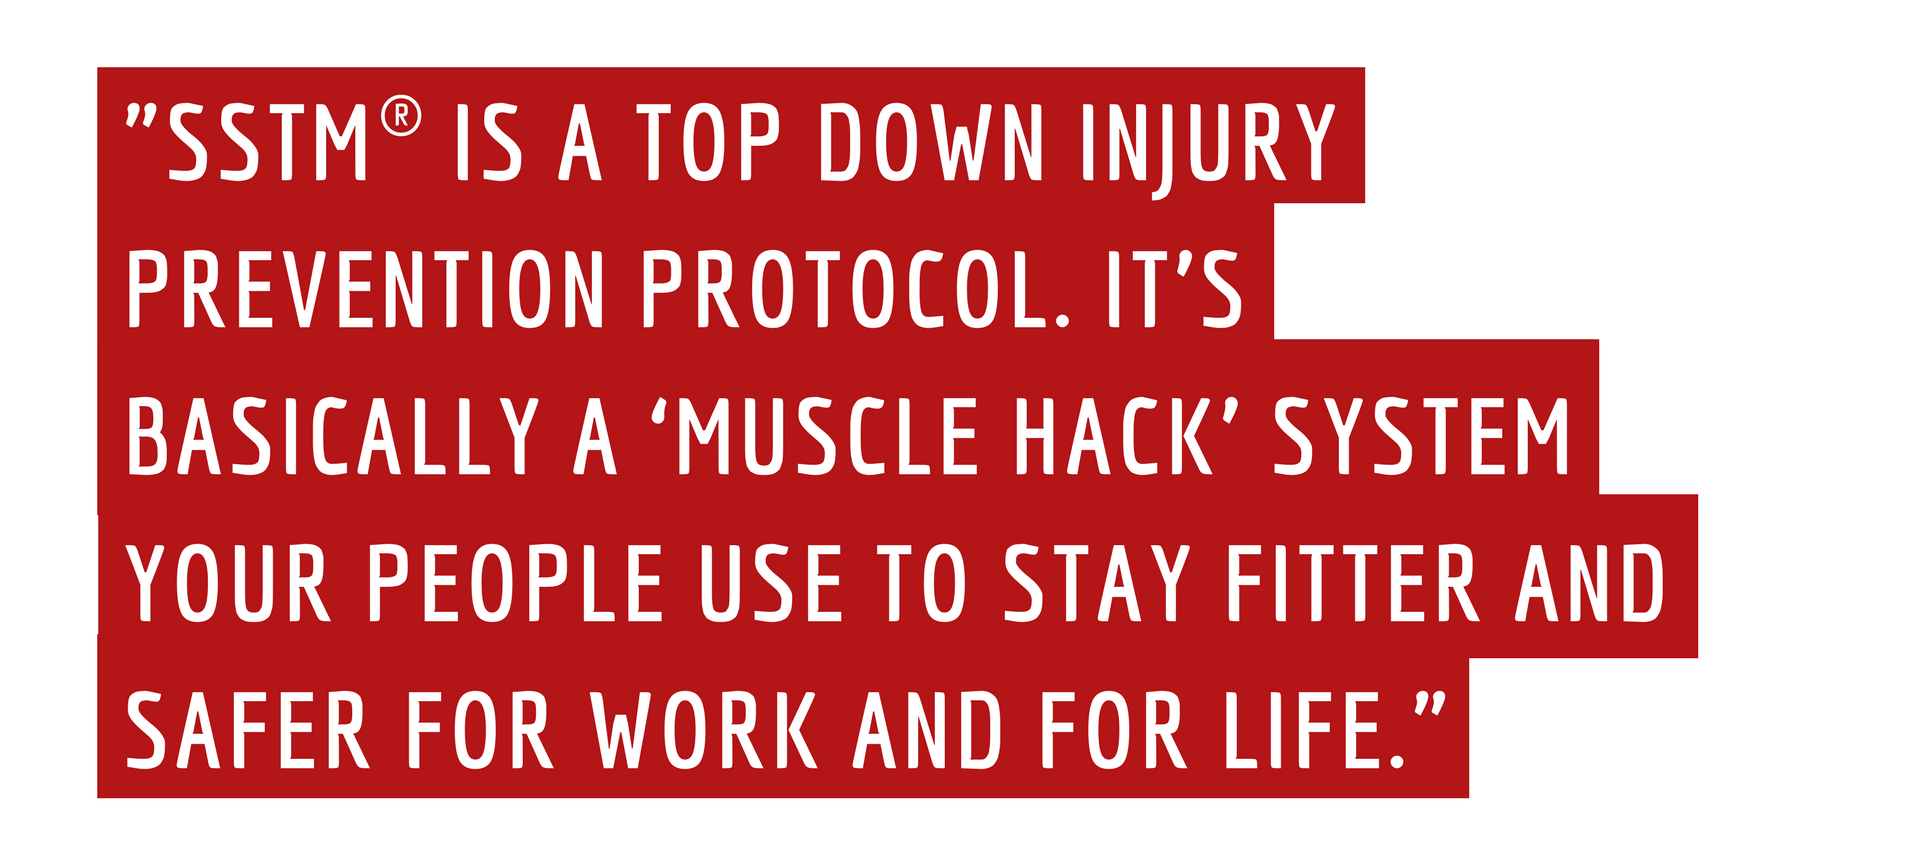 SSTM IS A TOP DOWN INJURY PREVENTION PROTOCOL